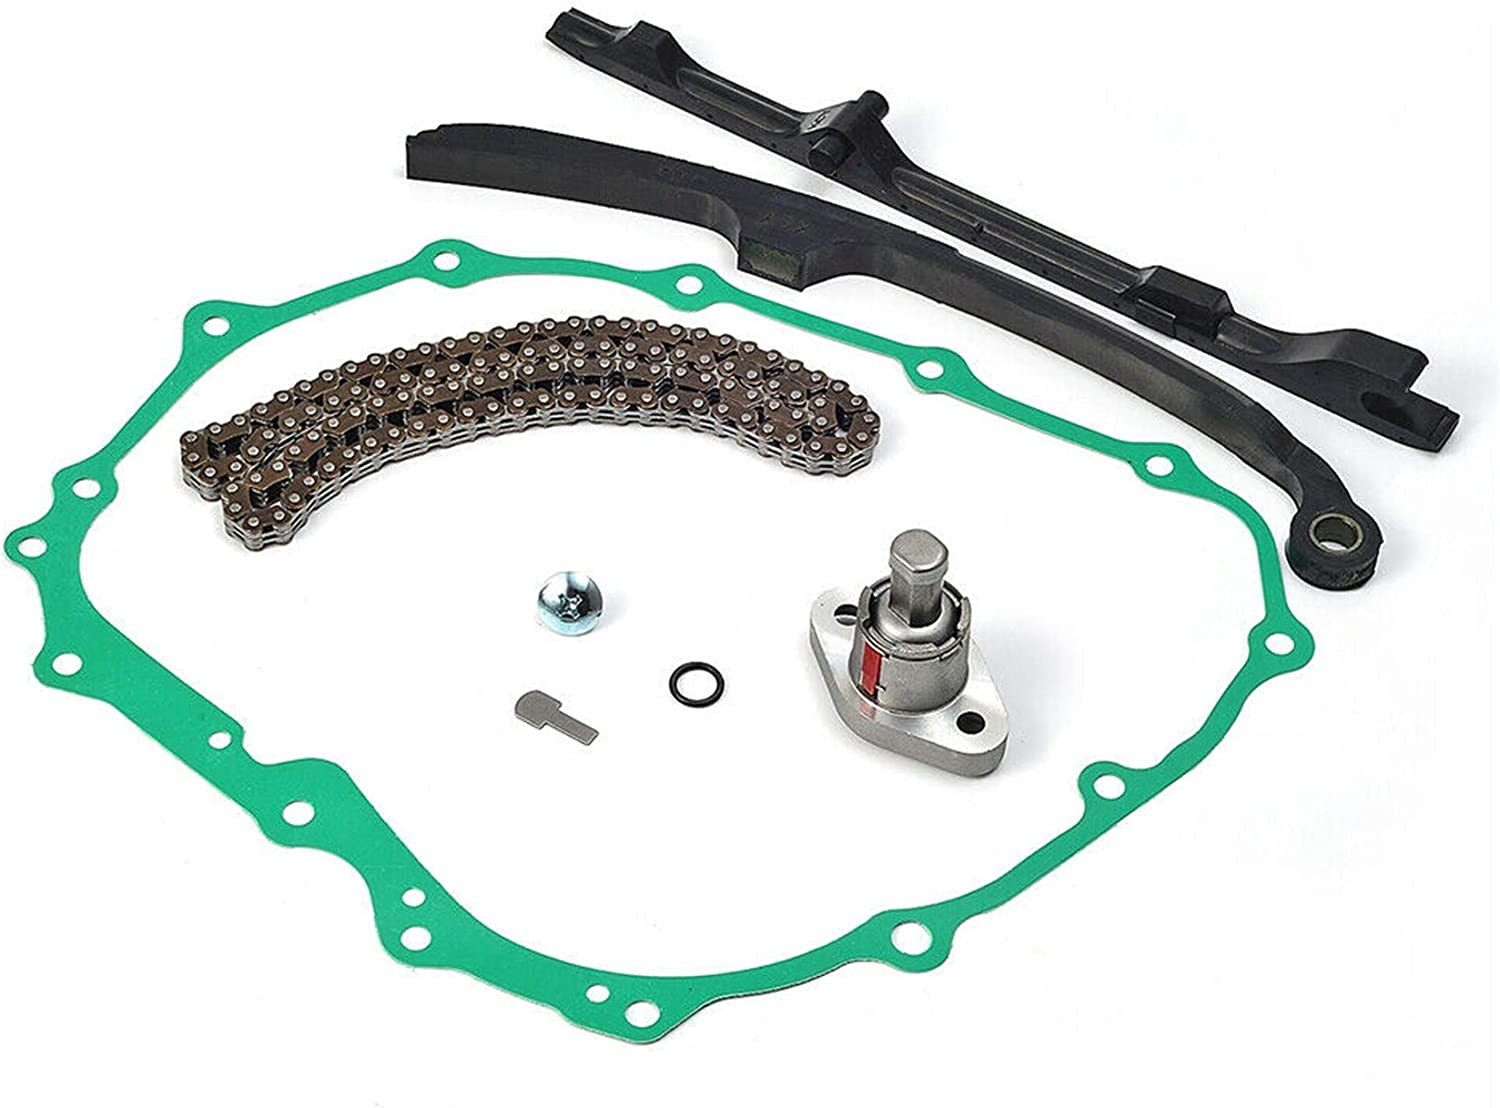 labwork Cam Timing Chain Guides Tensioner /& Cover Gasket Replacement for Honda TRX400EX TRX400X Replaces 14520-KCY-671 14511-KCY-670 14620-KCY-670